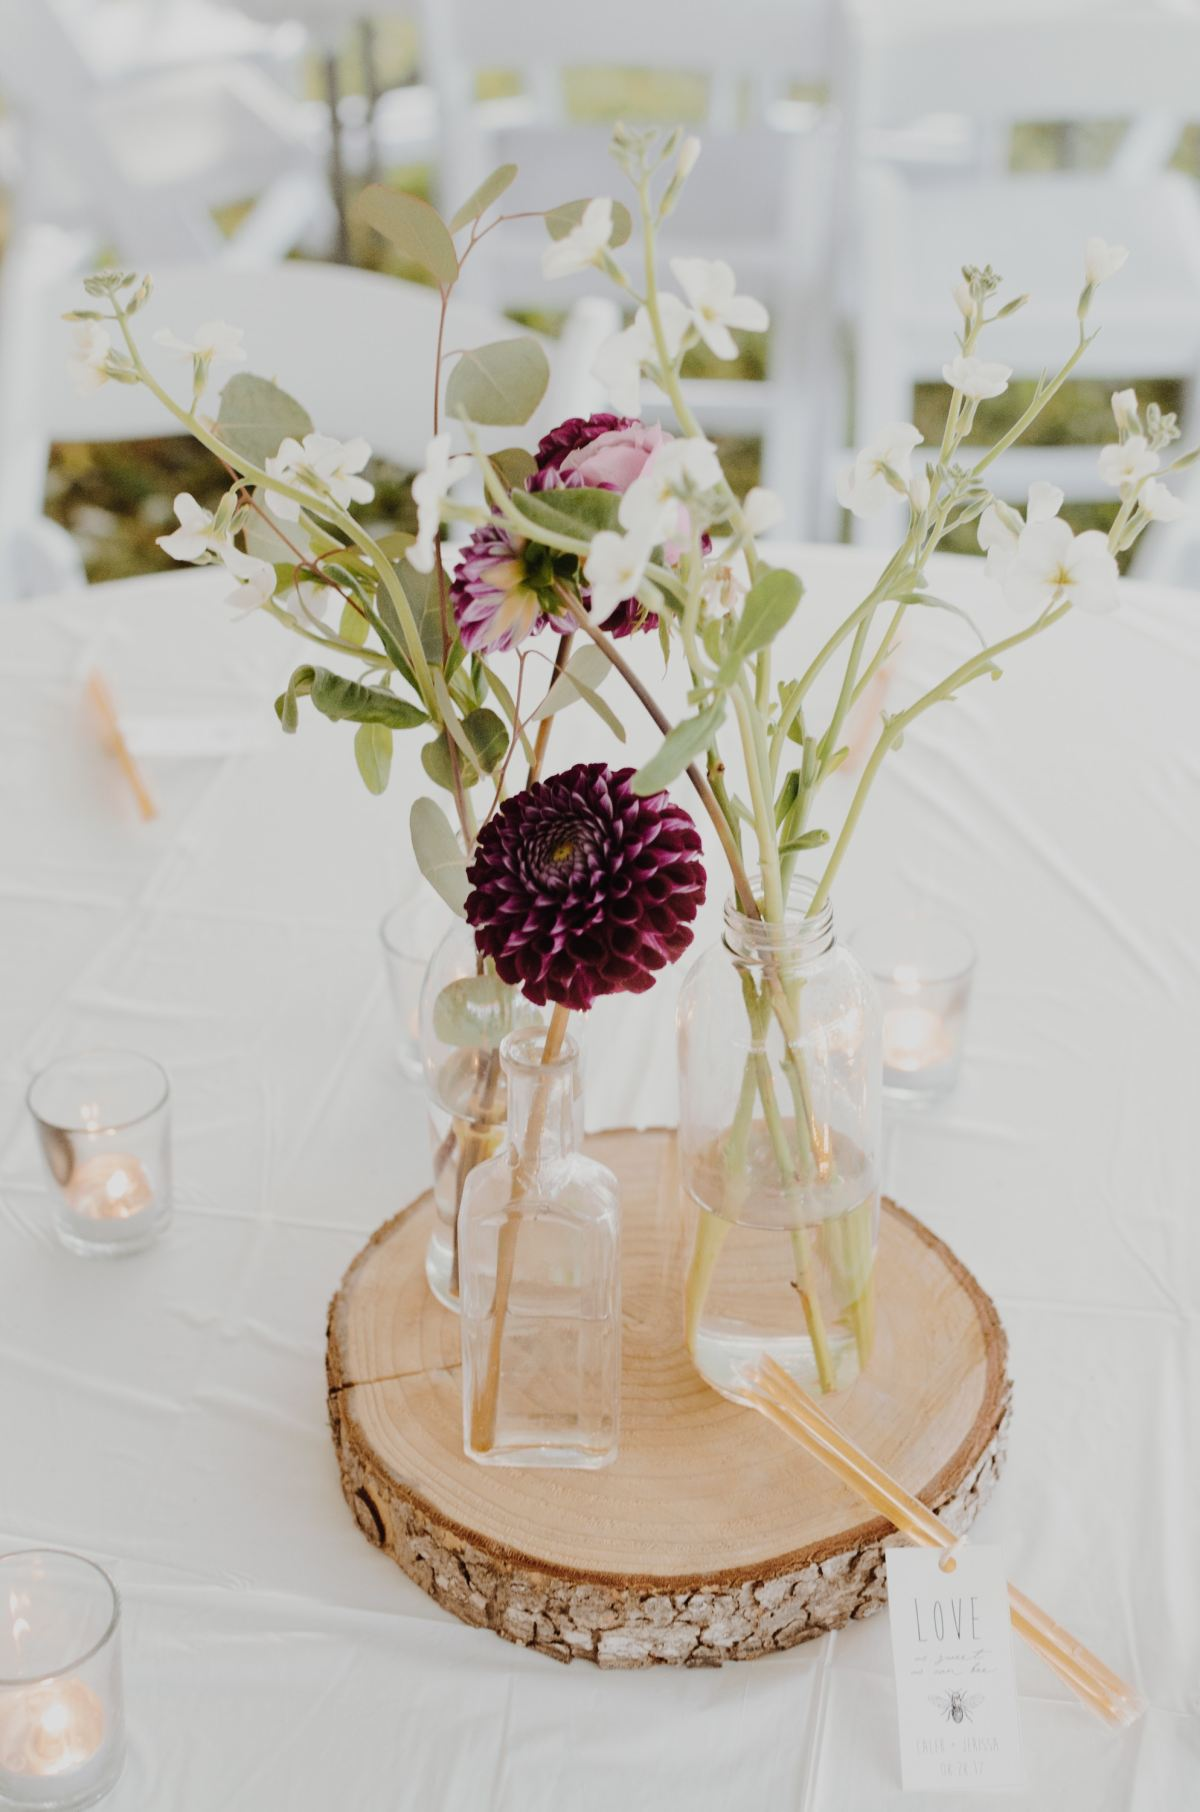 flowers on a table in small vases with candles